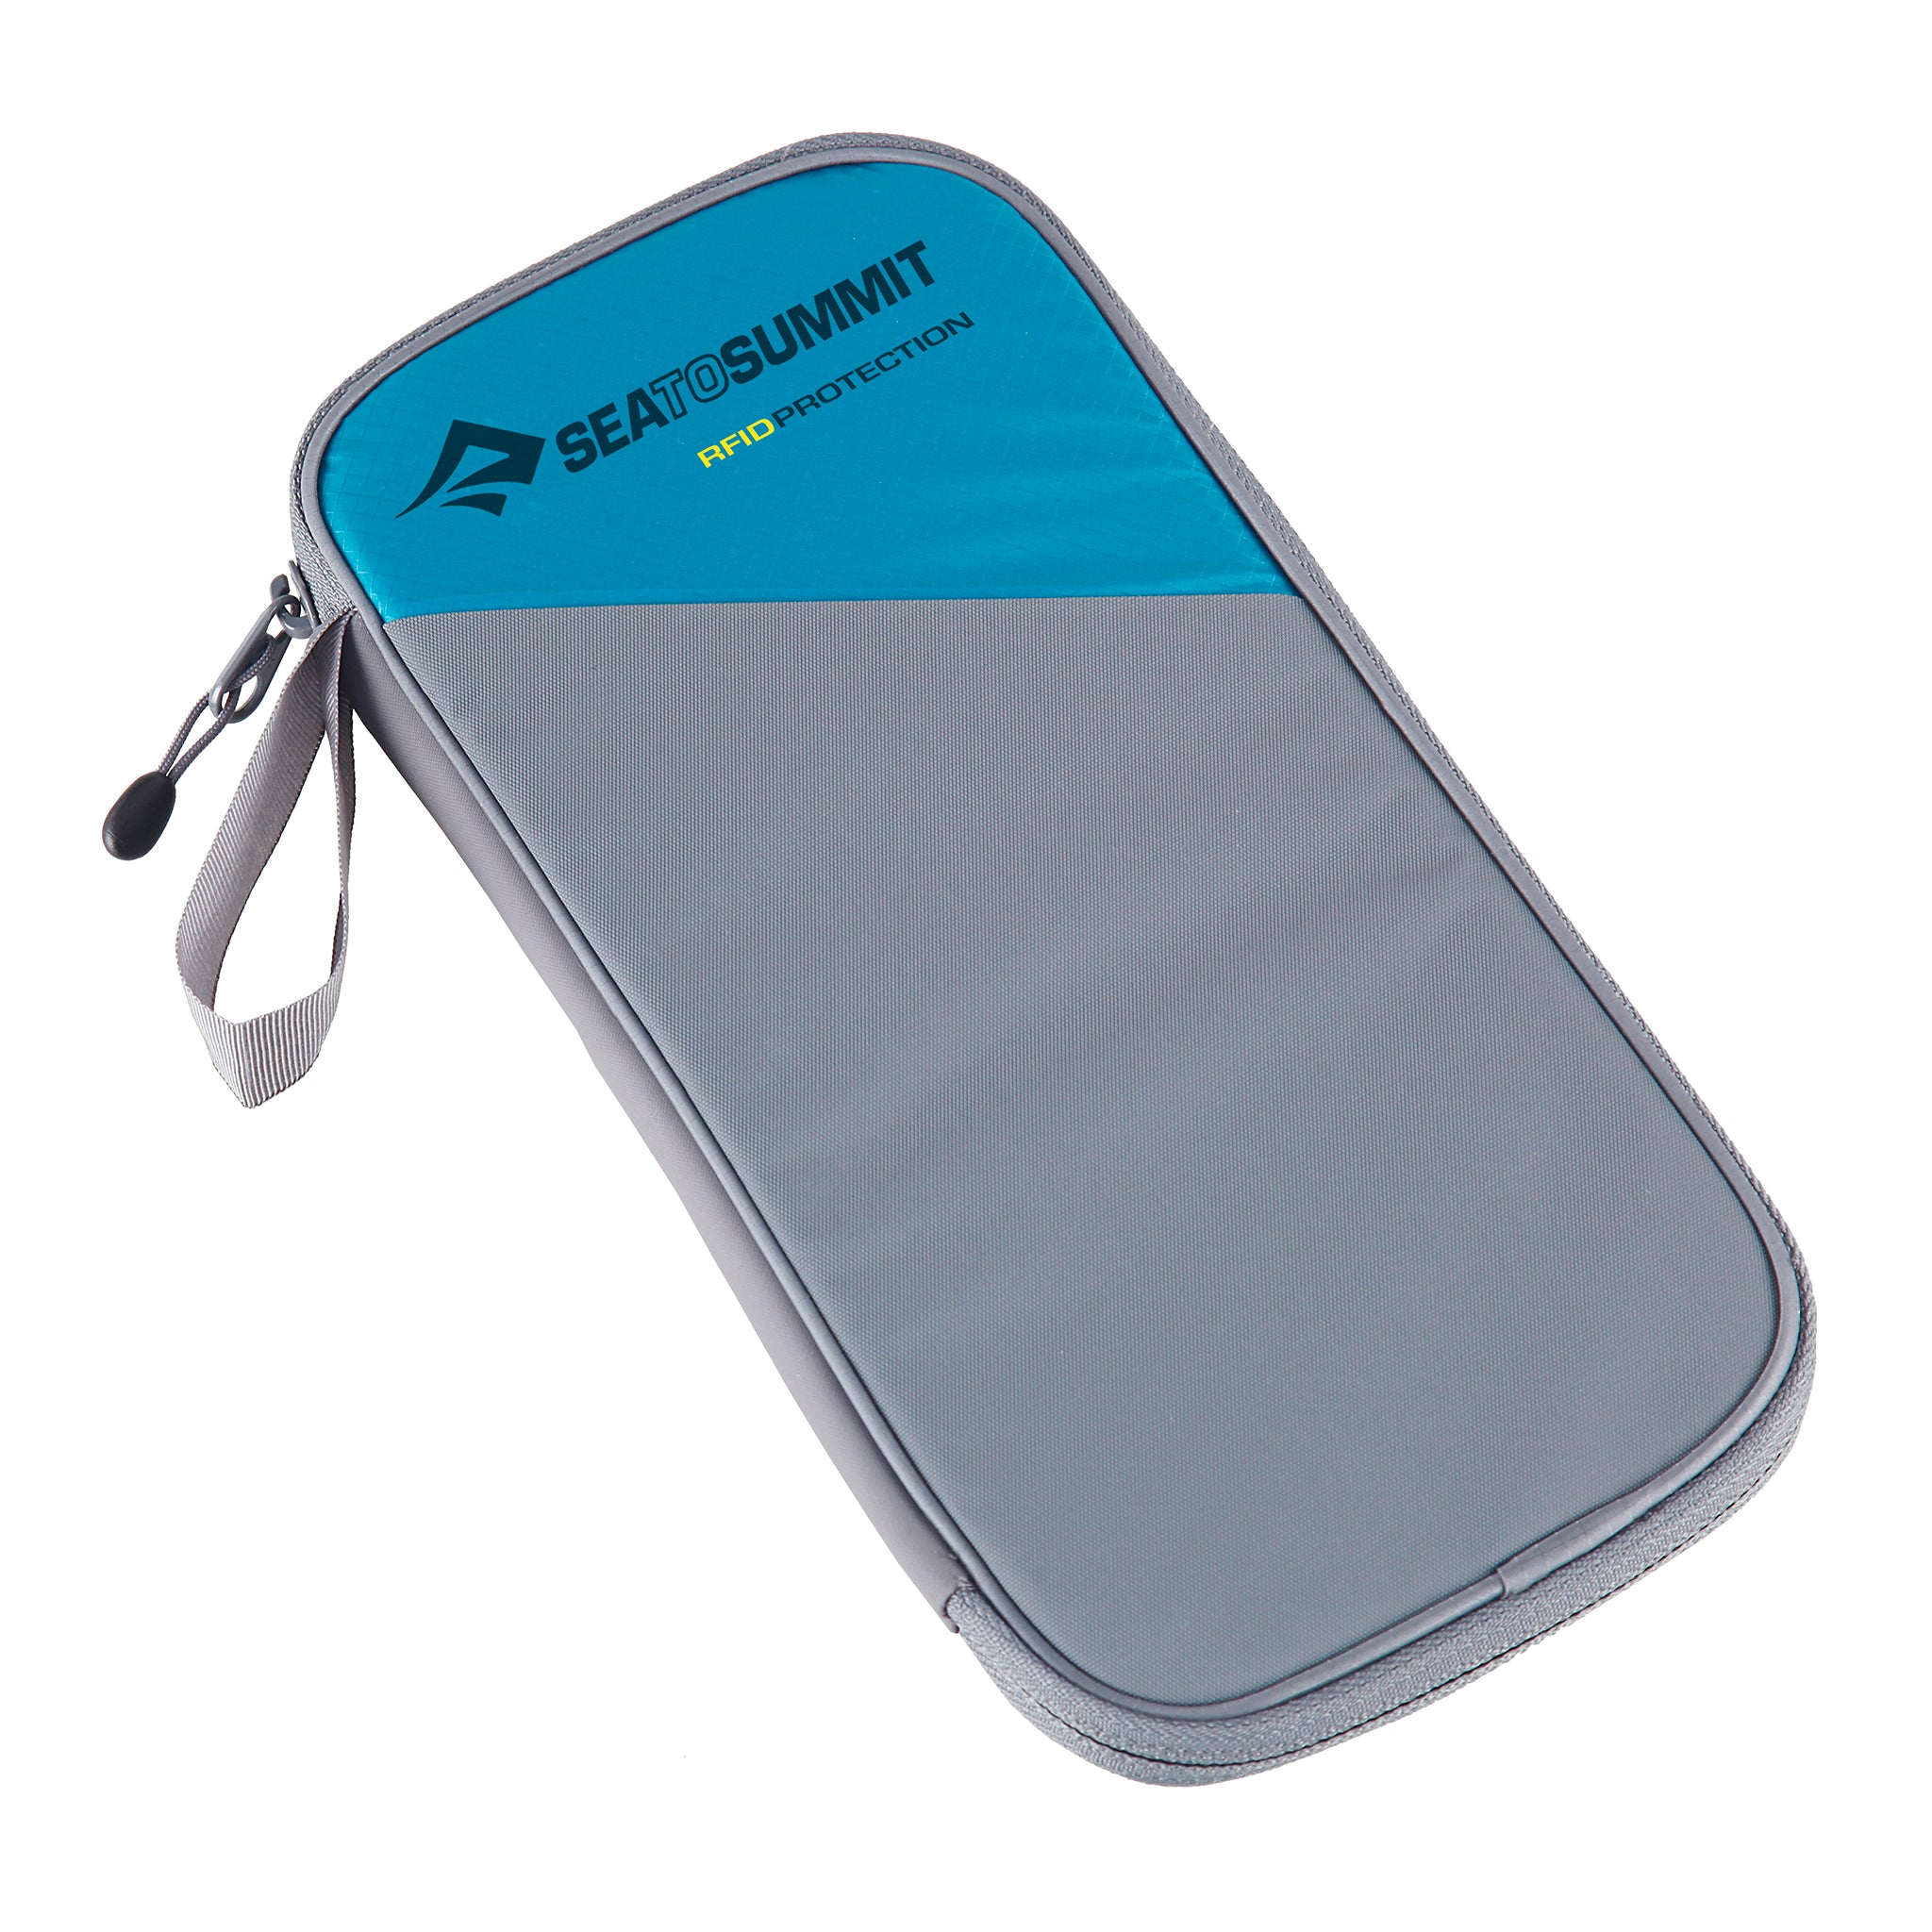 RFID card protector _ Travel Wallet _ large _ pacific blue